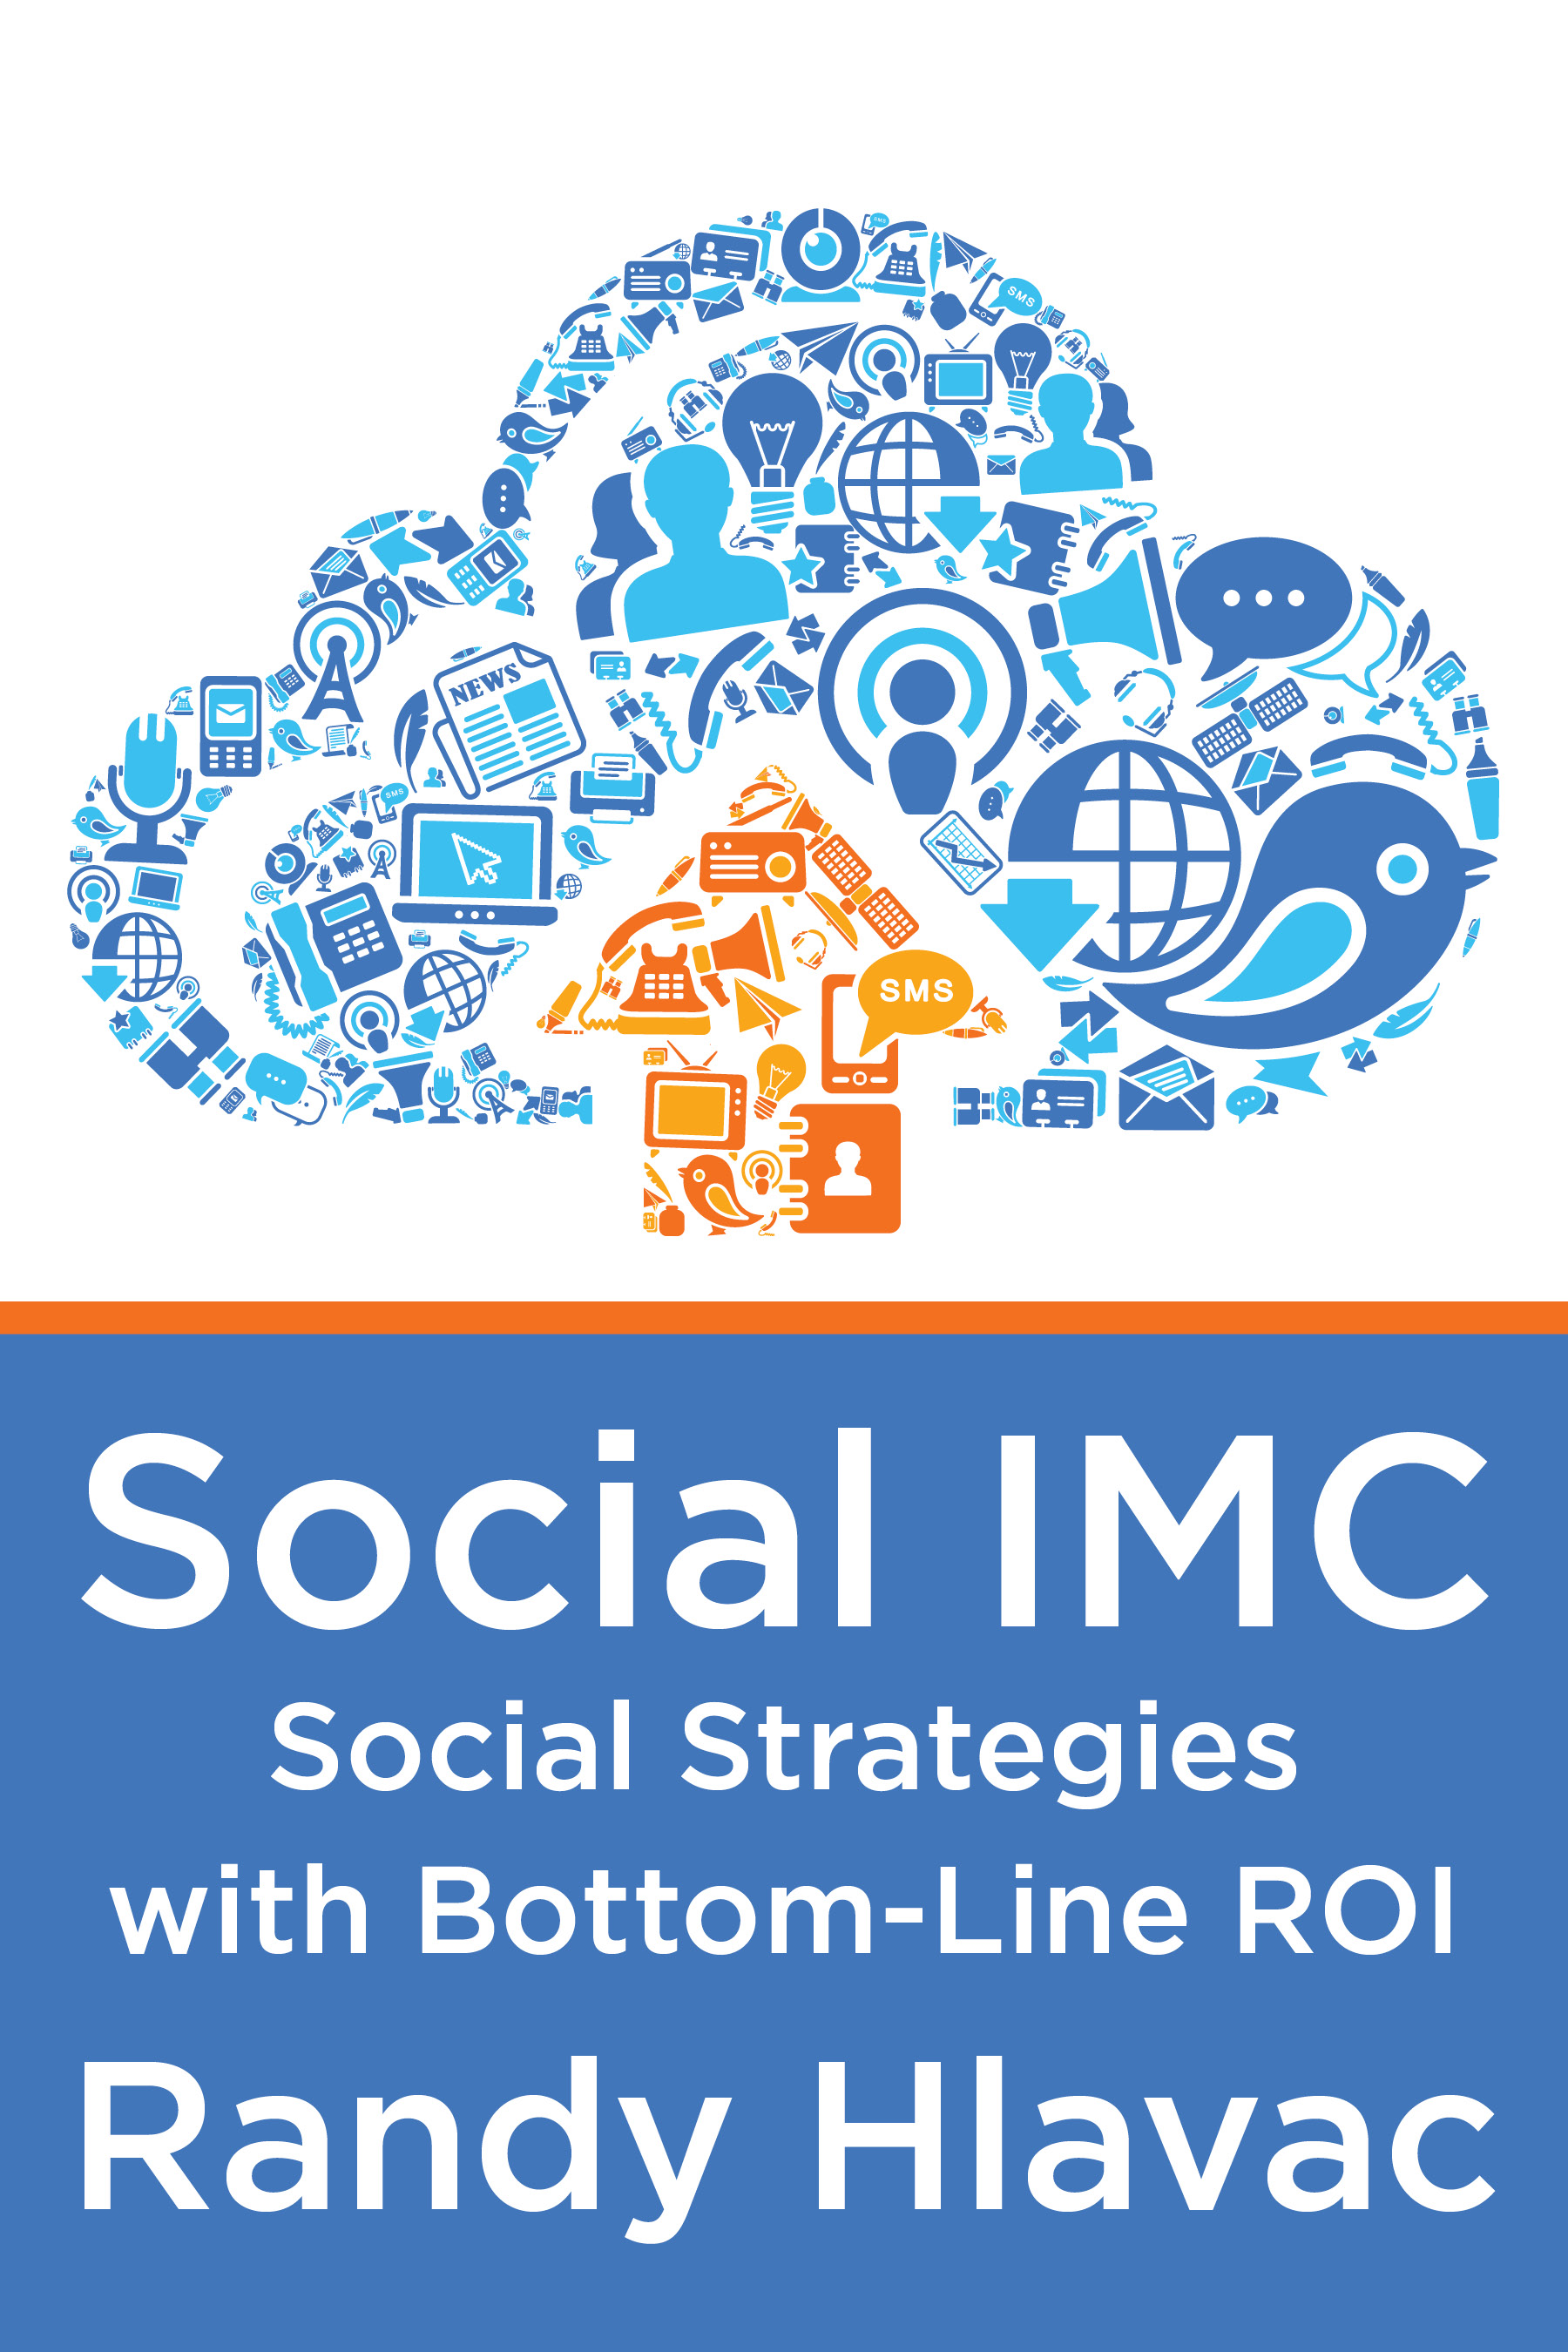 Social IMC  Social Marketing  Social ROI  CEO CMO